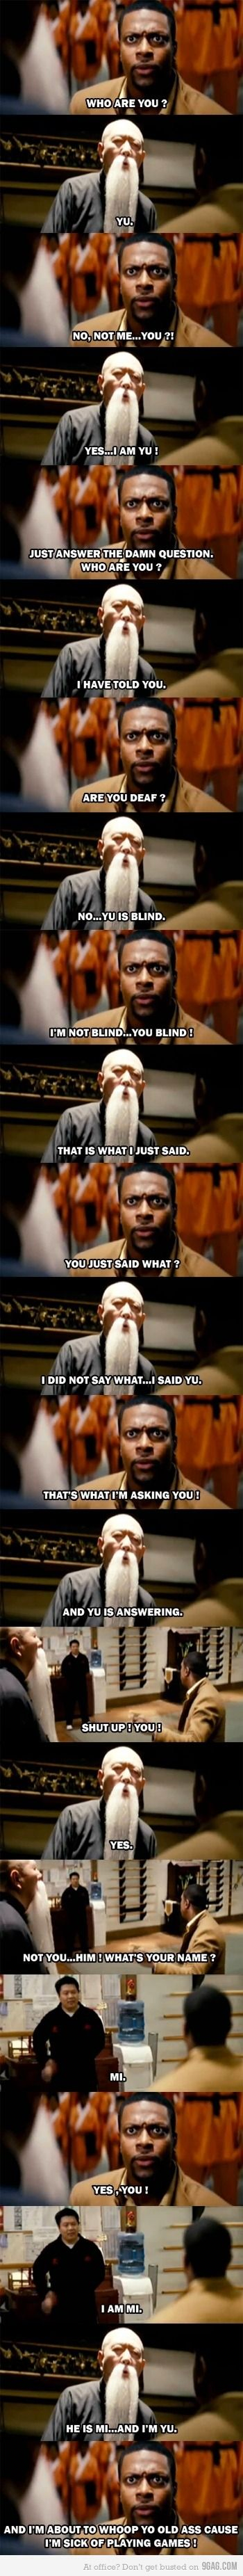 This is from the movie Rush Hour... you should watch it, its HILARIOUS! 😂